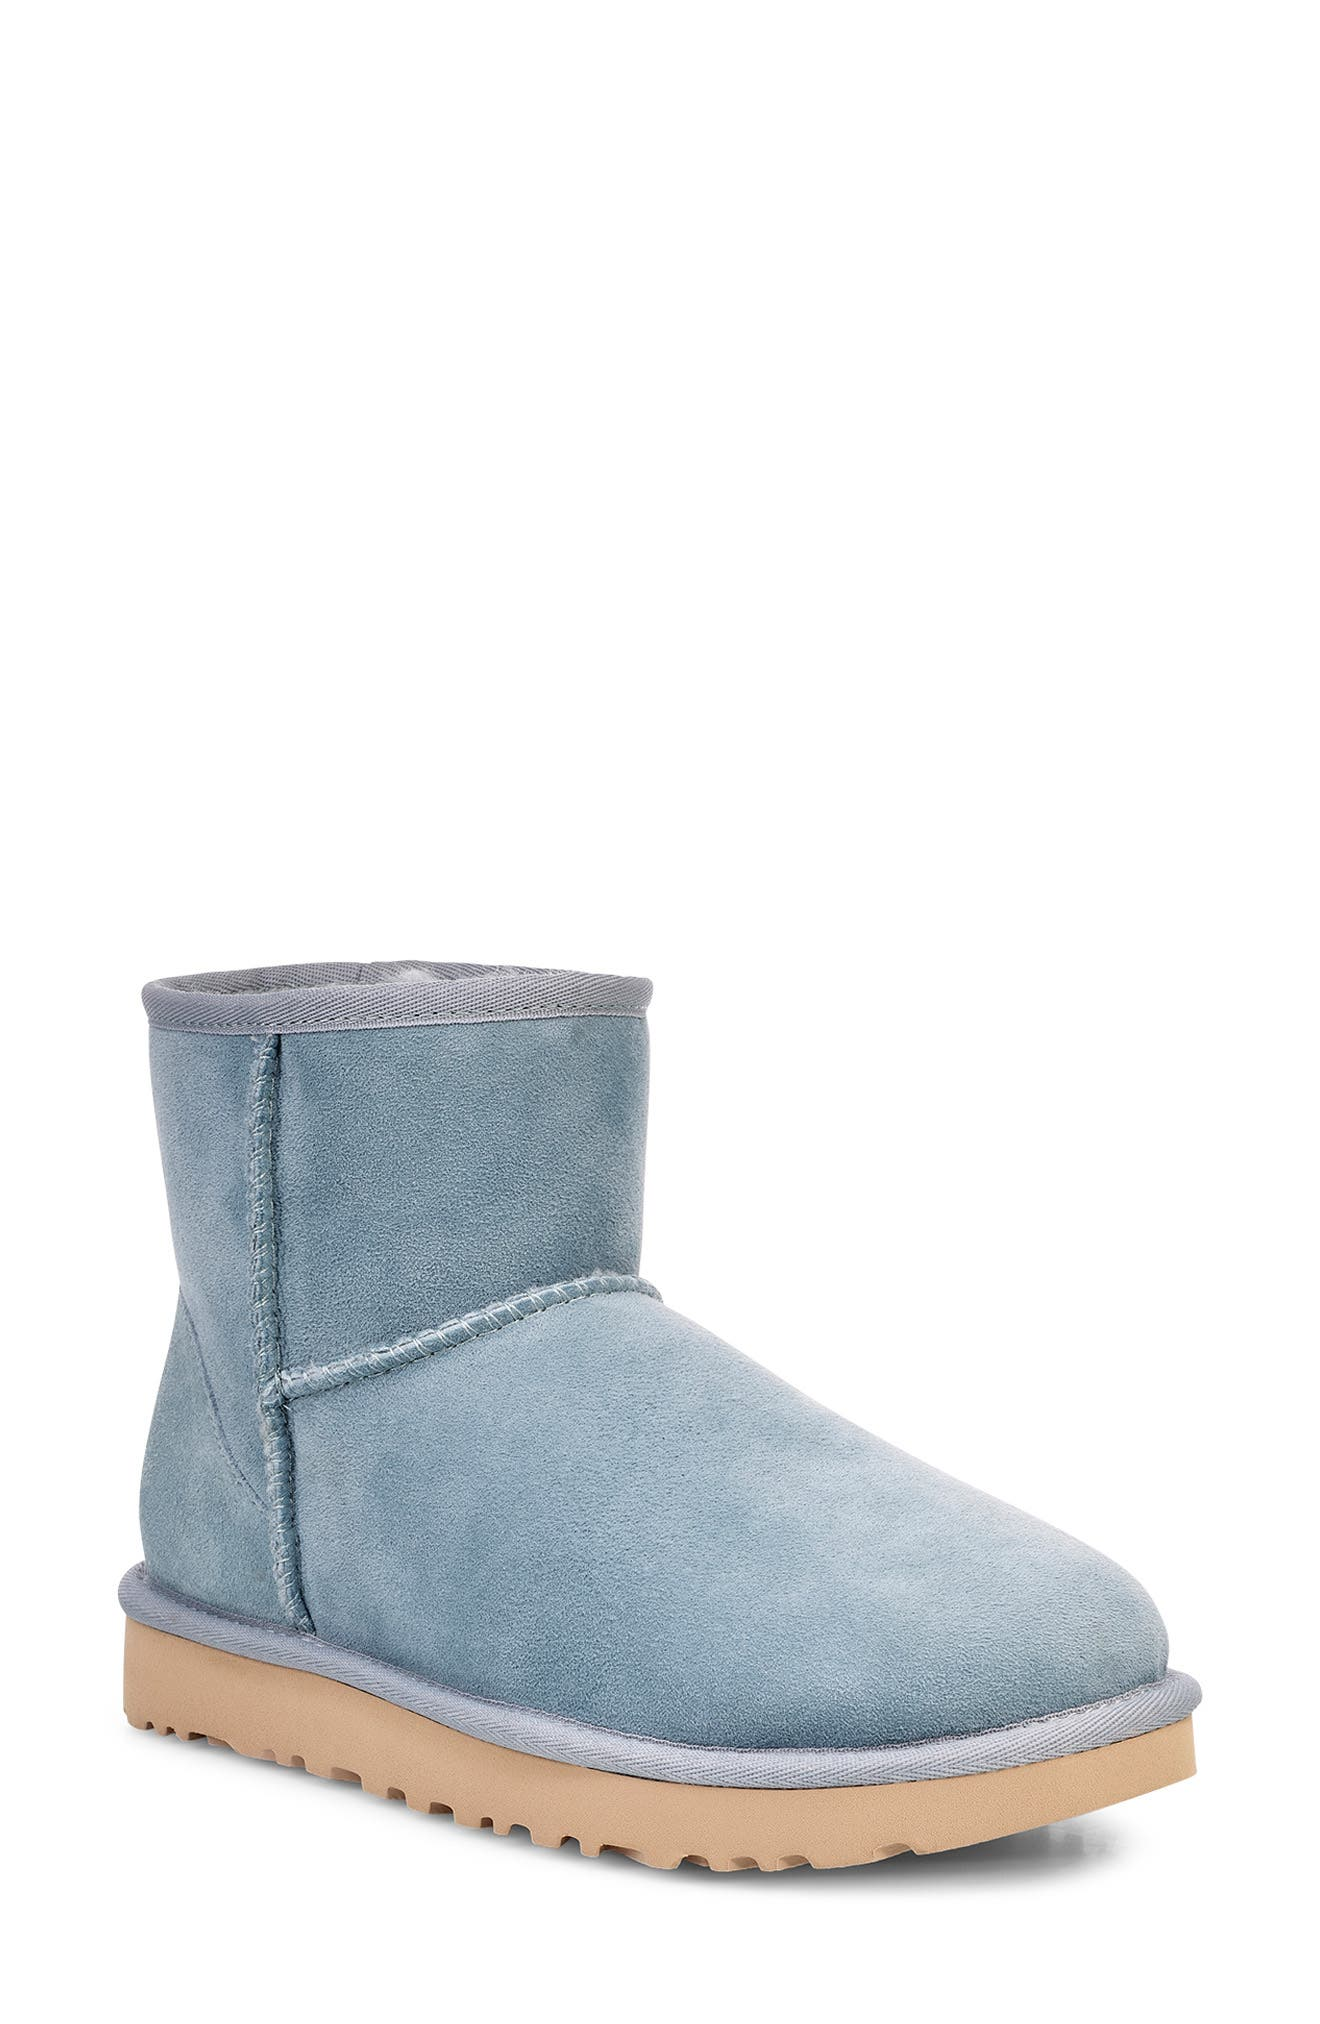 ugg classic mini ii genuine shearling lined boot women nordstrom rh shop nordstrom com